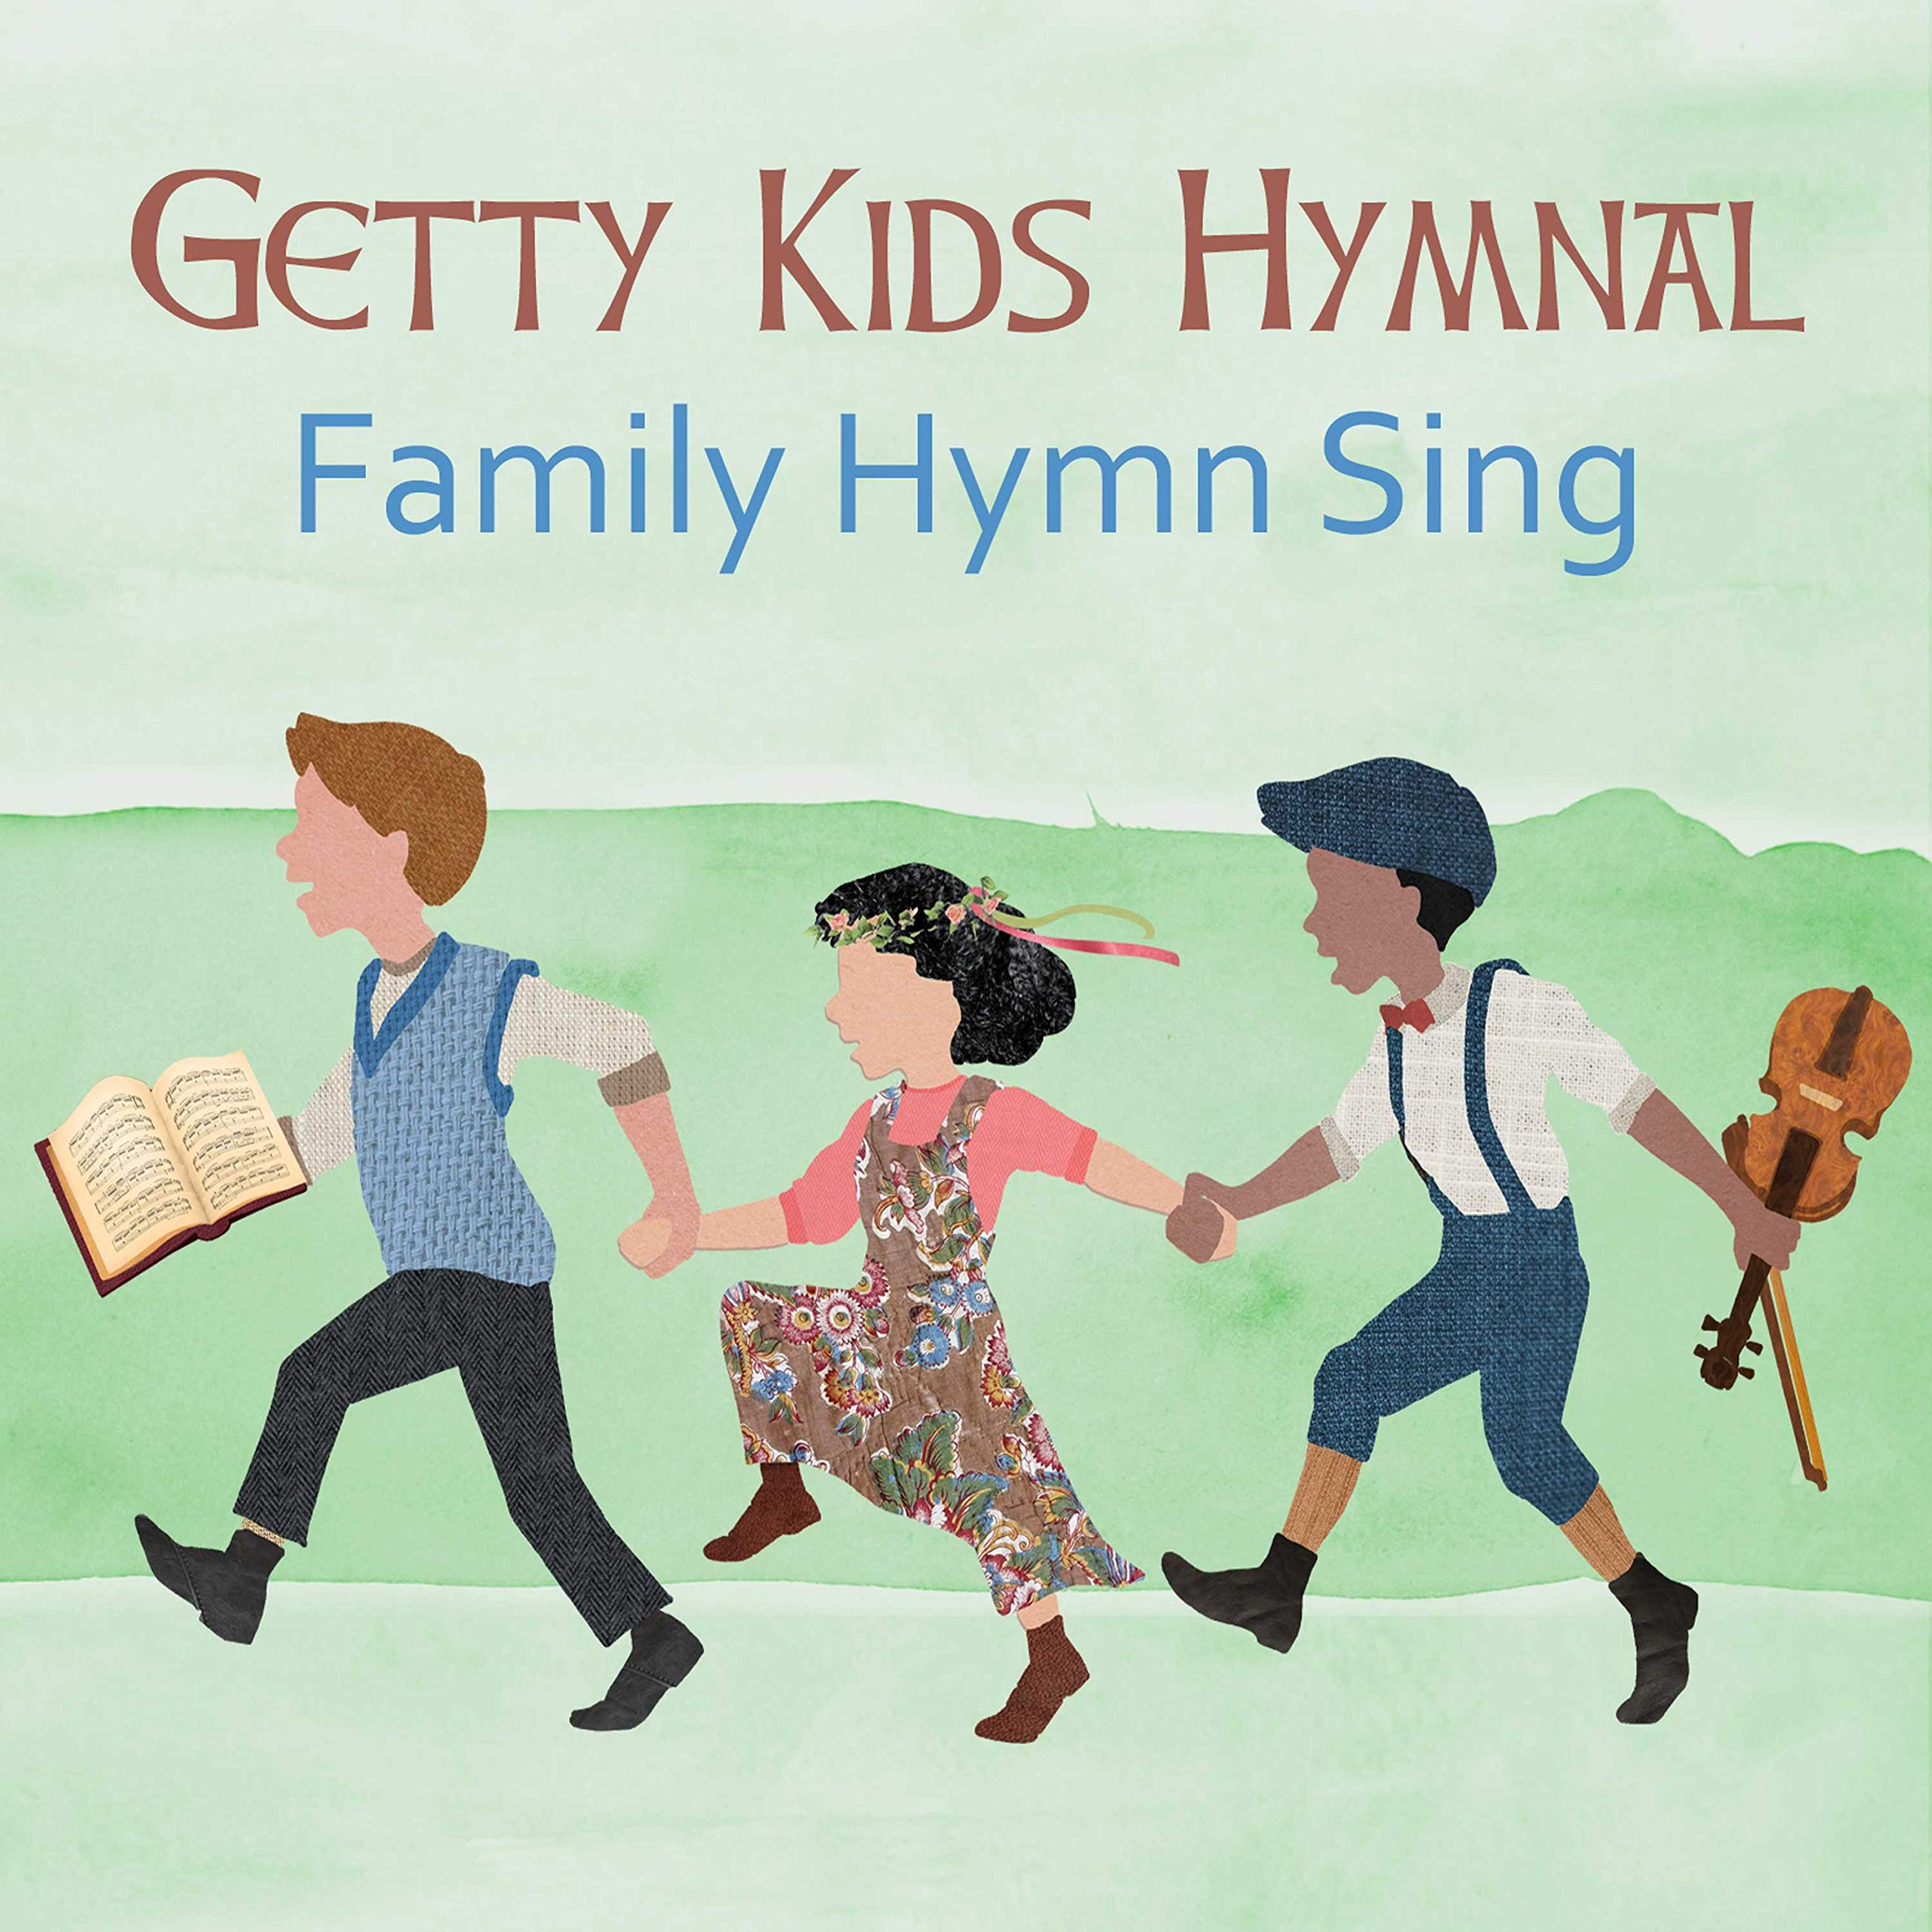 CD : Keith & Kristyn Getty - Getty Kids Hymnal: Family Hymn Sing (CD)